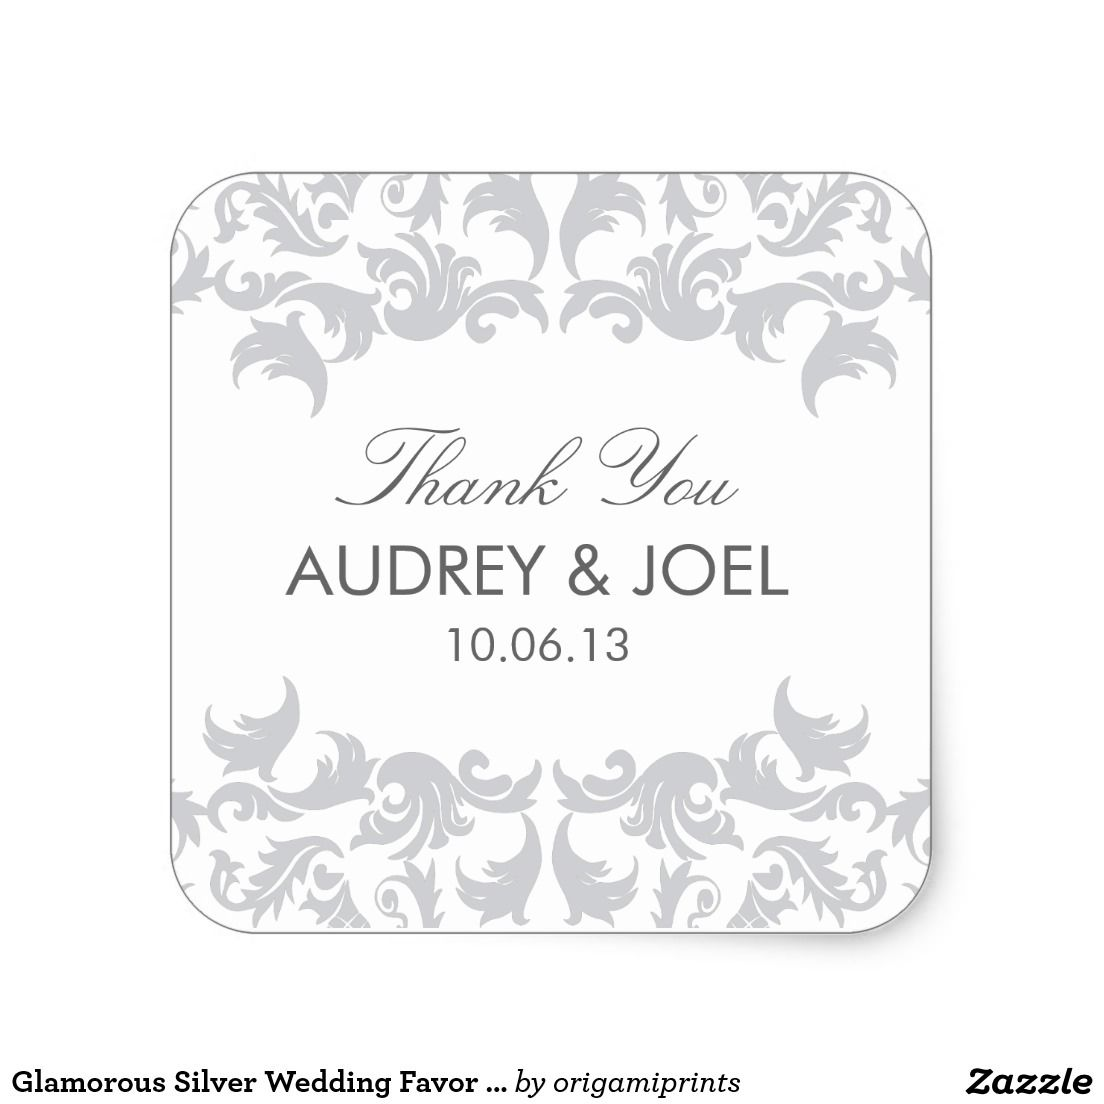 Glamorous Silver Wedding Favor Stickers | Silver wedding favors ...